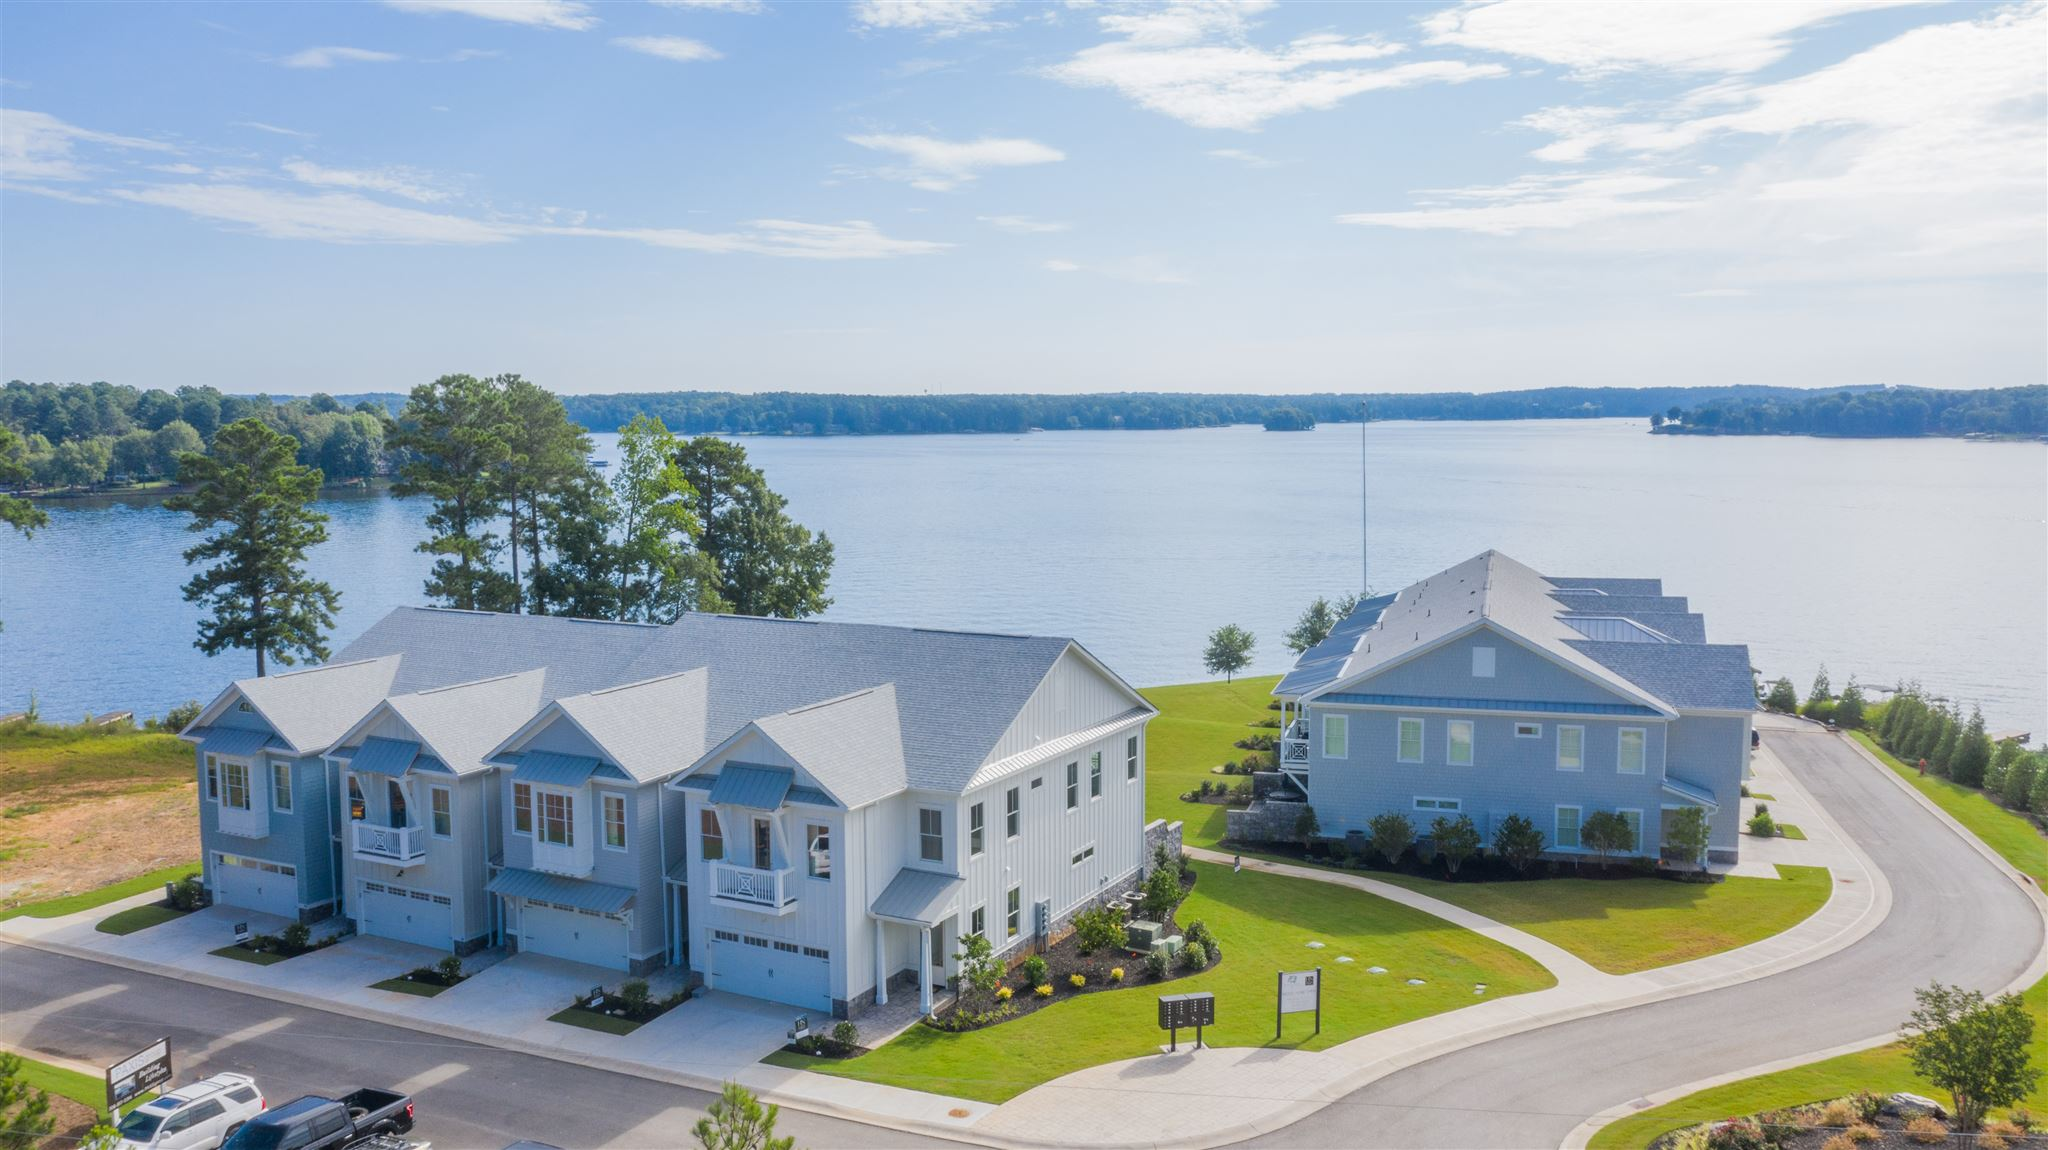 200 COLLIS MARINA ROAD, one of homes for sale in Lake Oconee